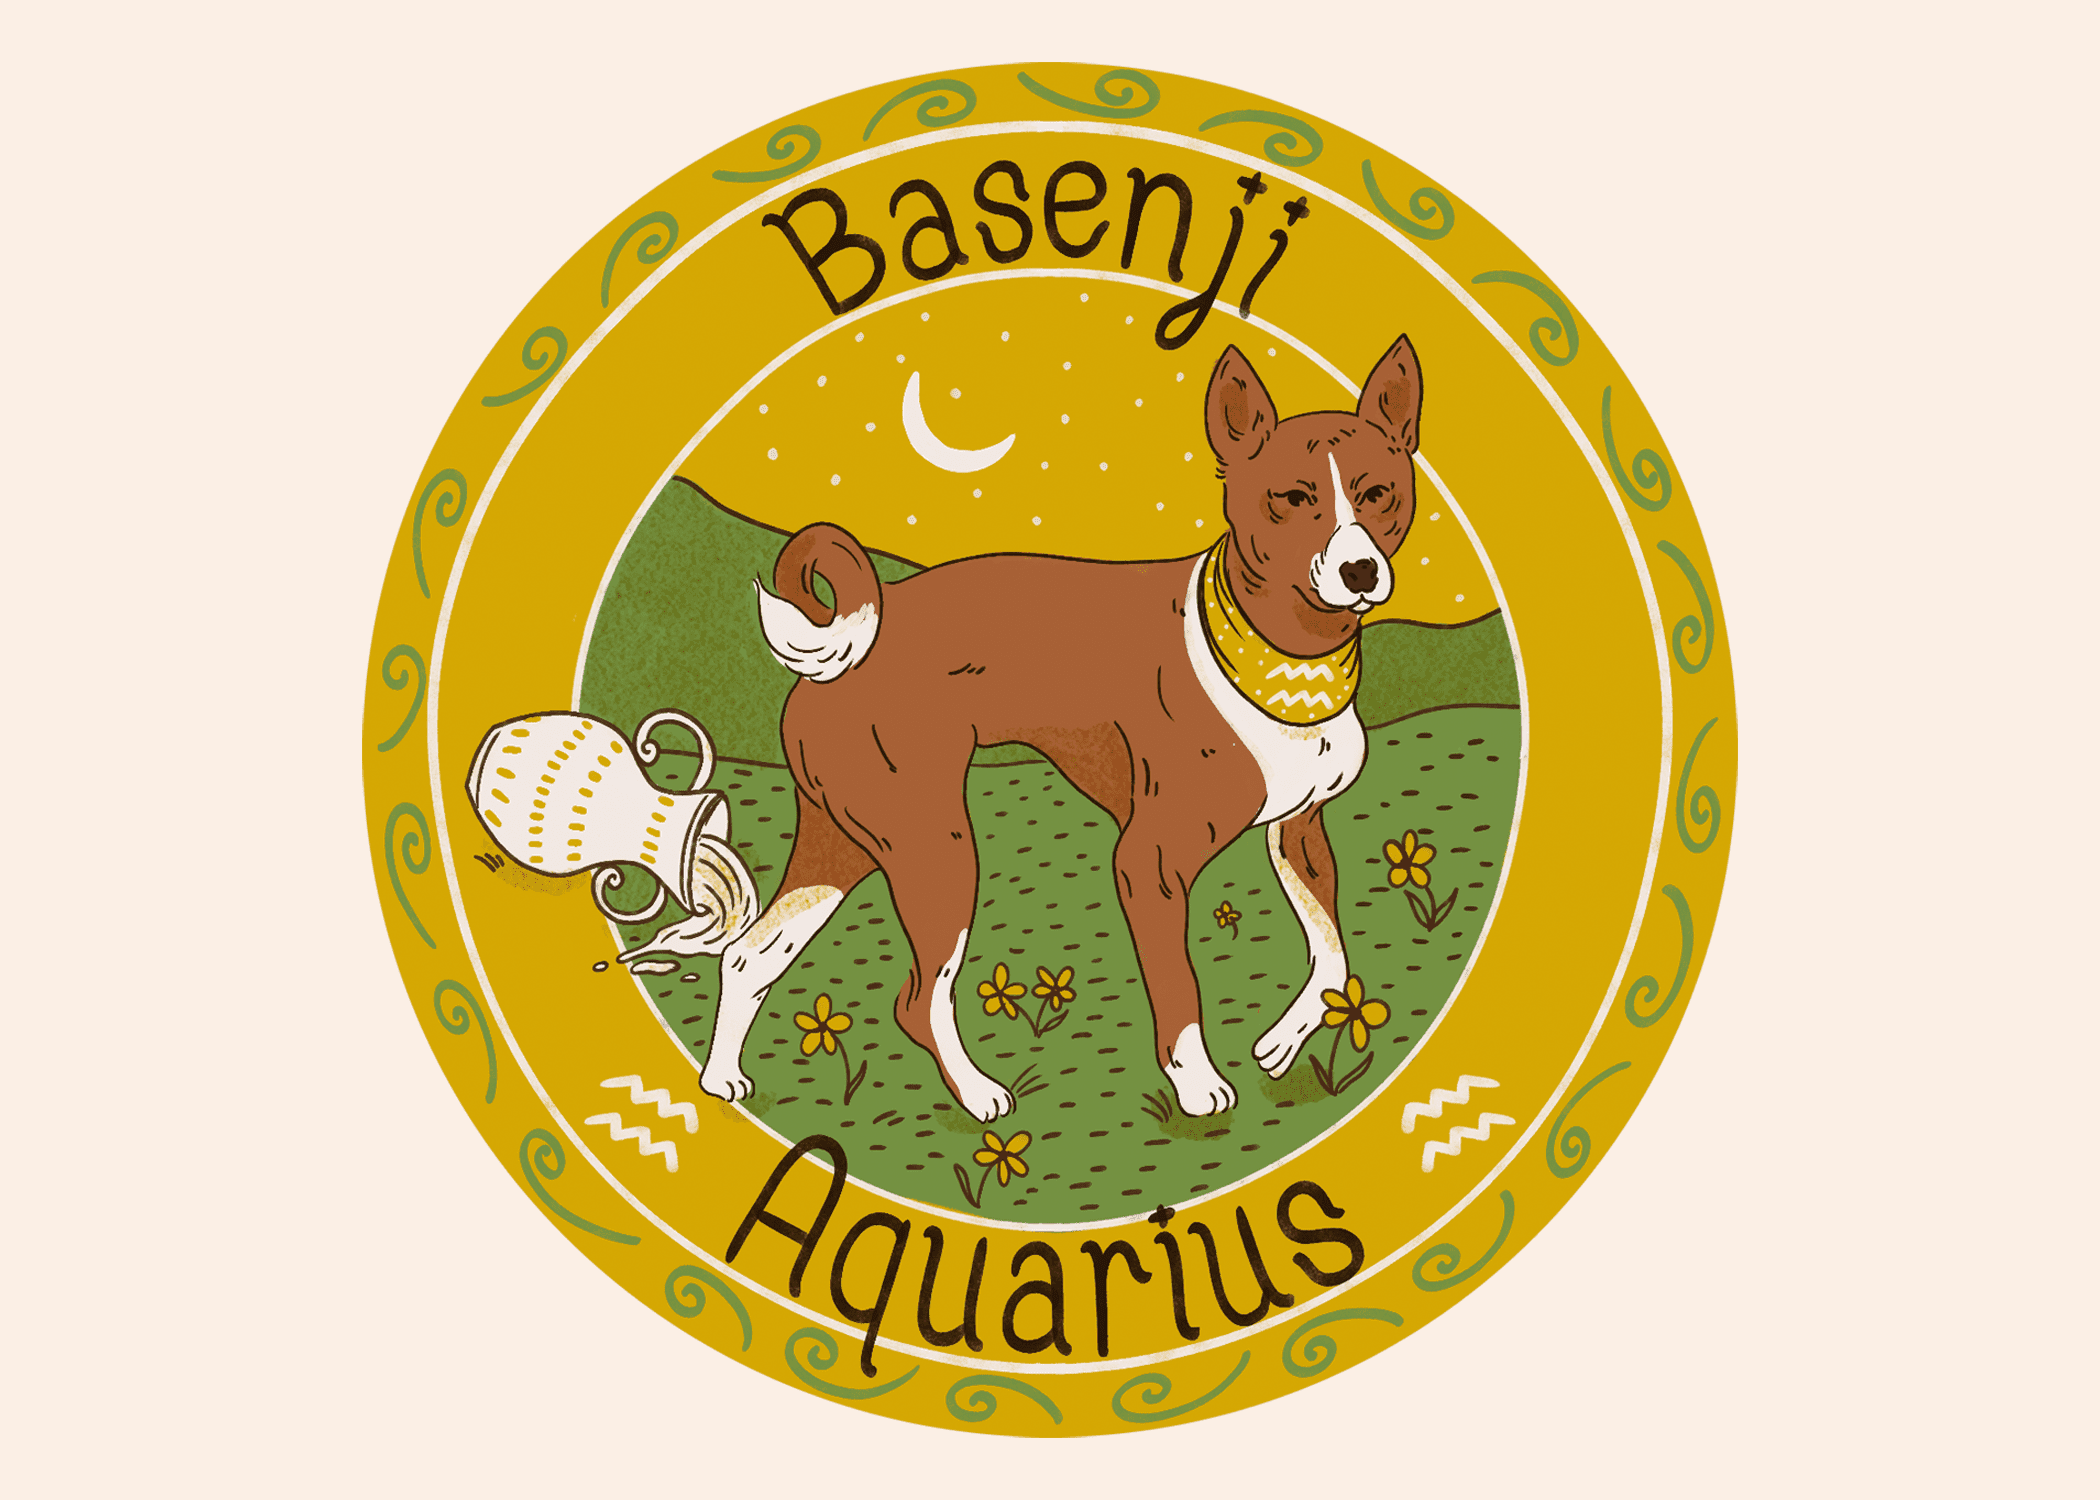 Illustration of a Basenji dog